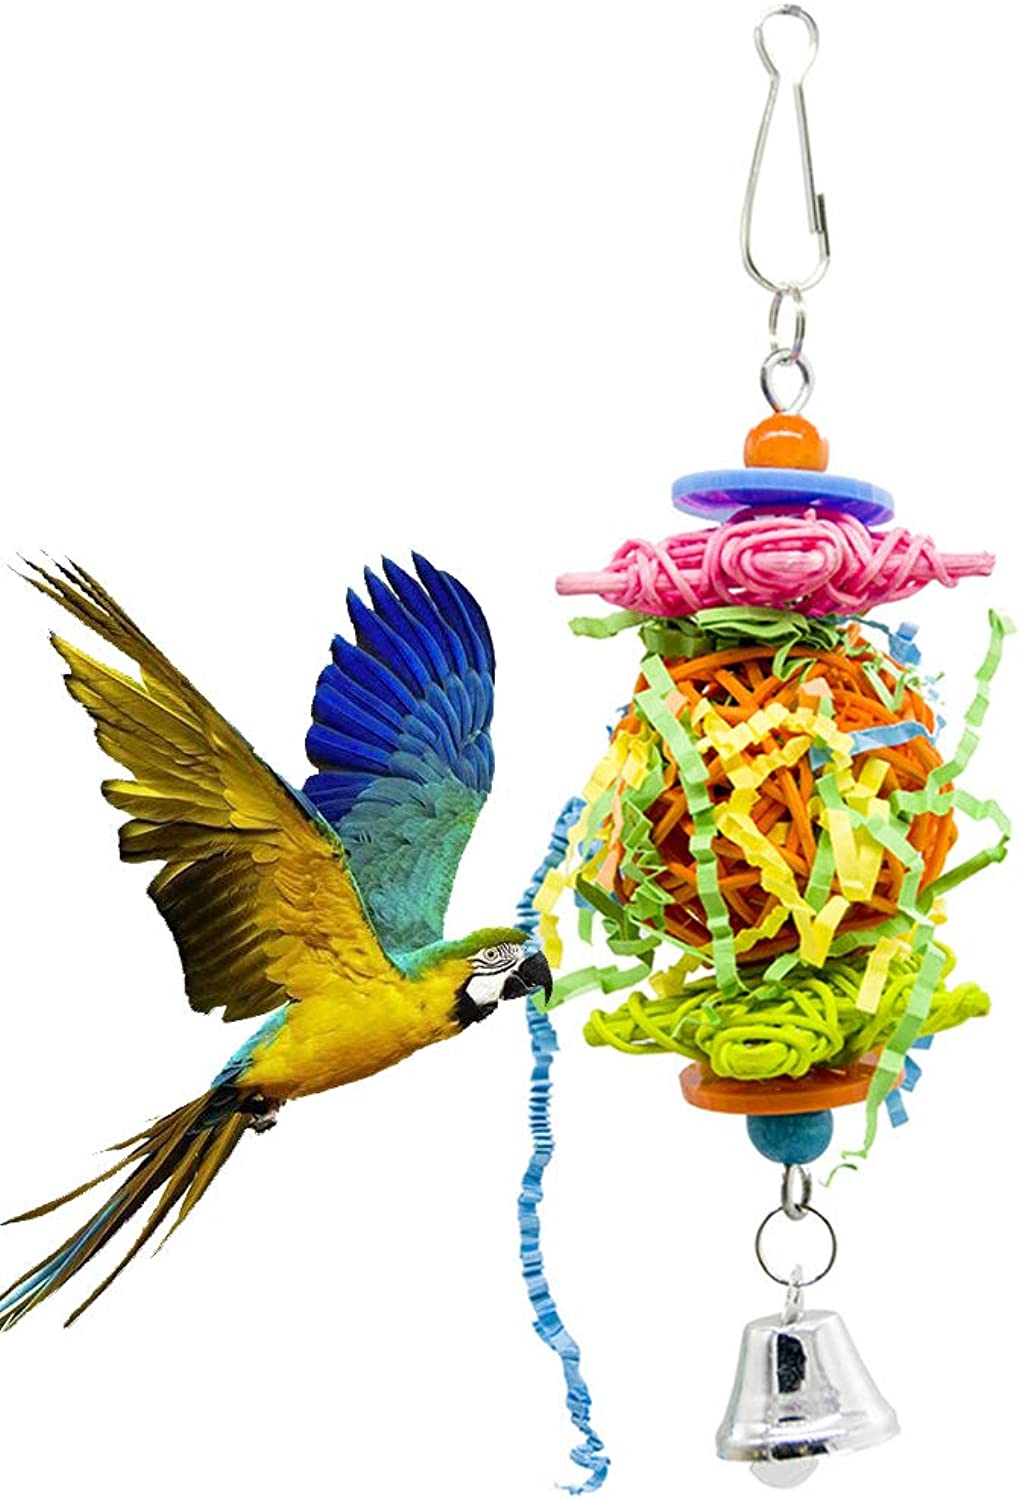 Bird Parred Toy, Rattan Ball Brushed Bite Toy, Bird Cage Decoration Accessories AntiWear Pet Toy